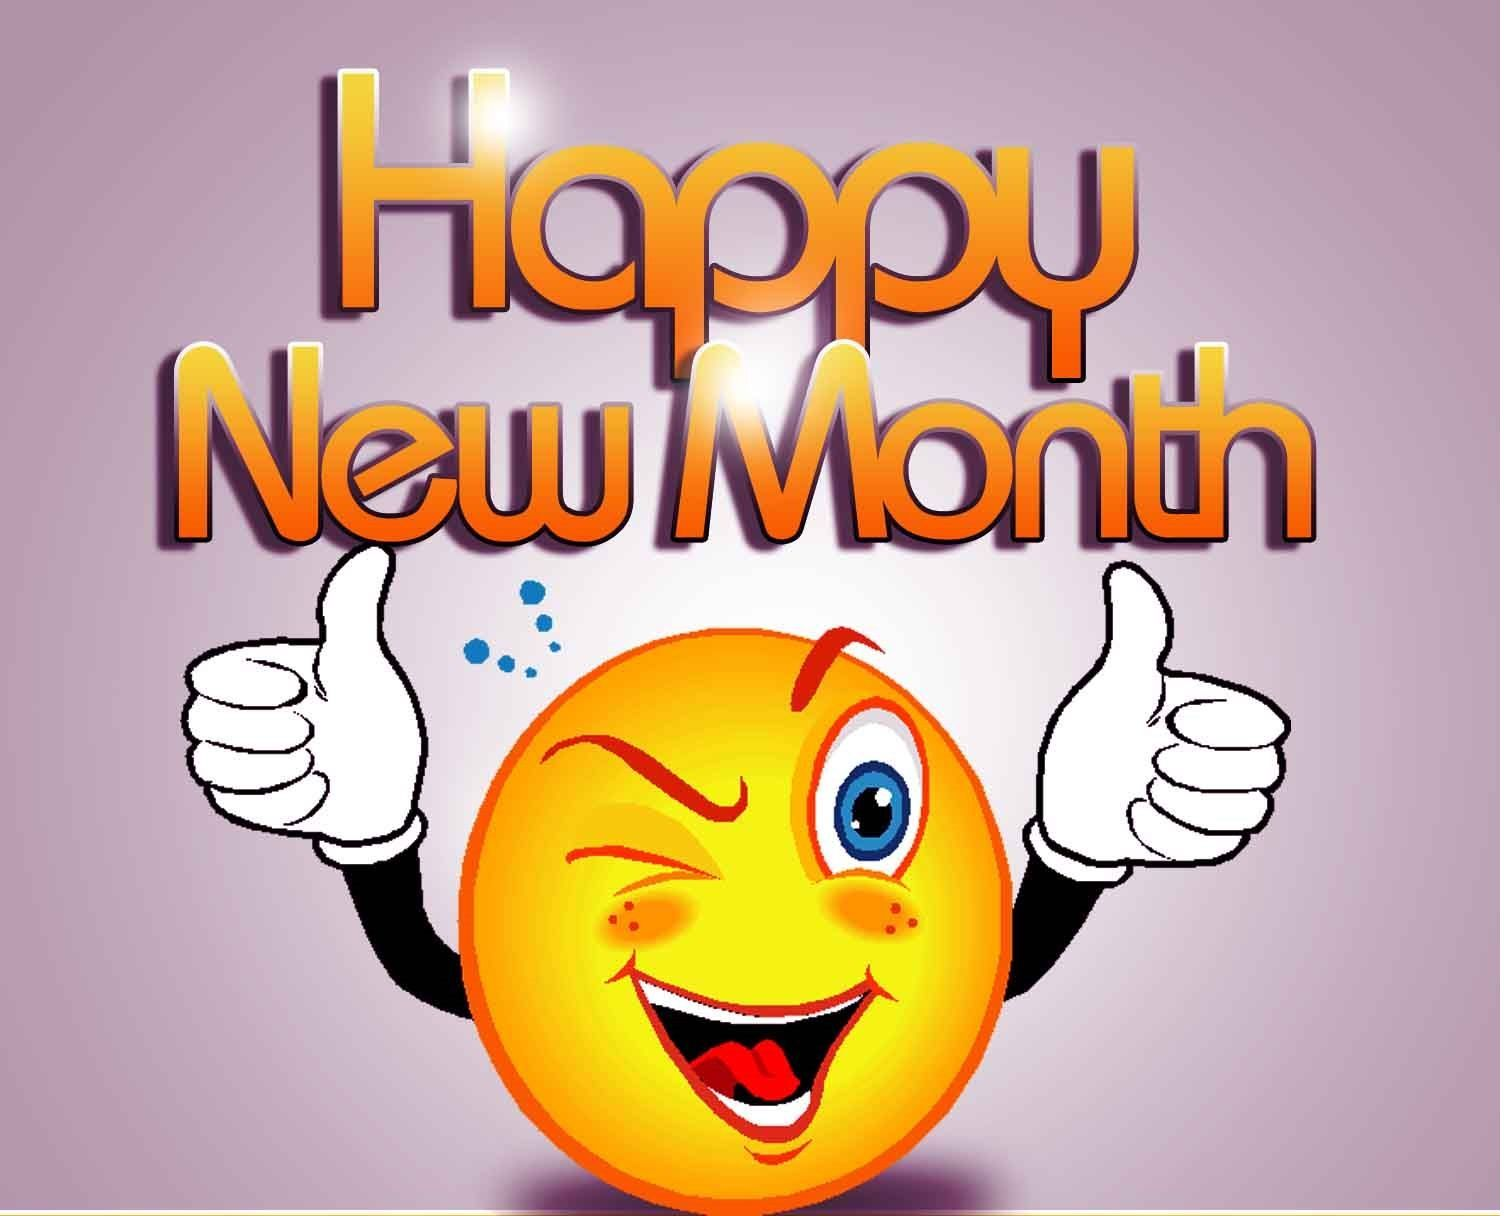 c78324b297374e3ed62cffe4f8d704bc happy new month quotes months month new month quotes new months,New Month Meme